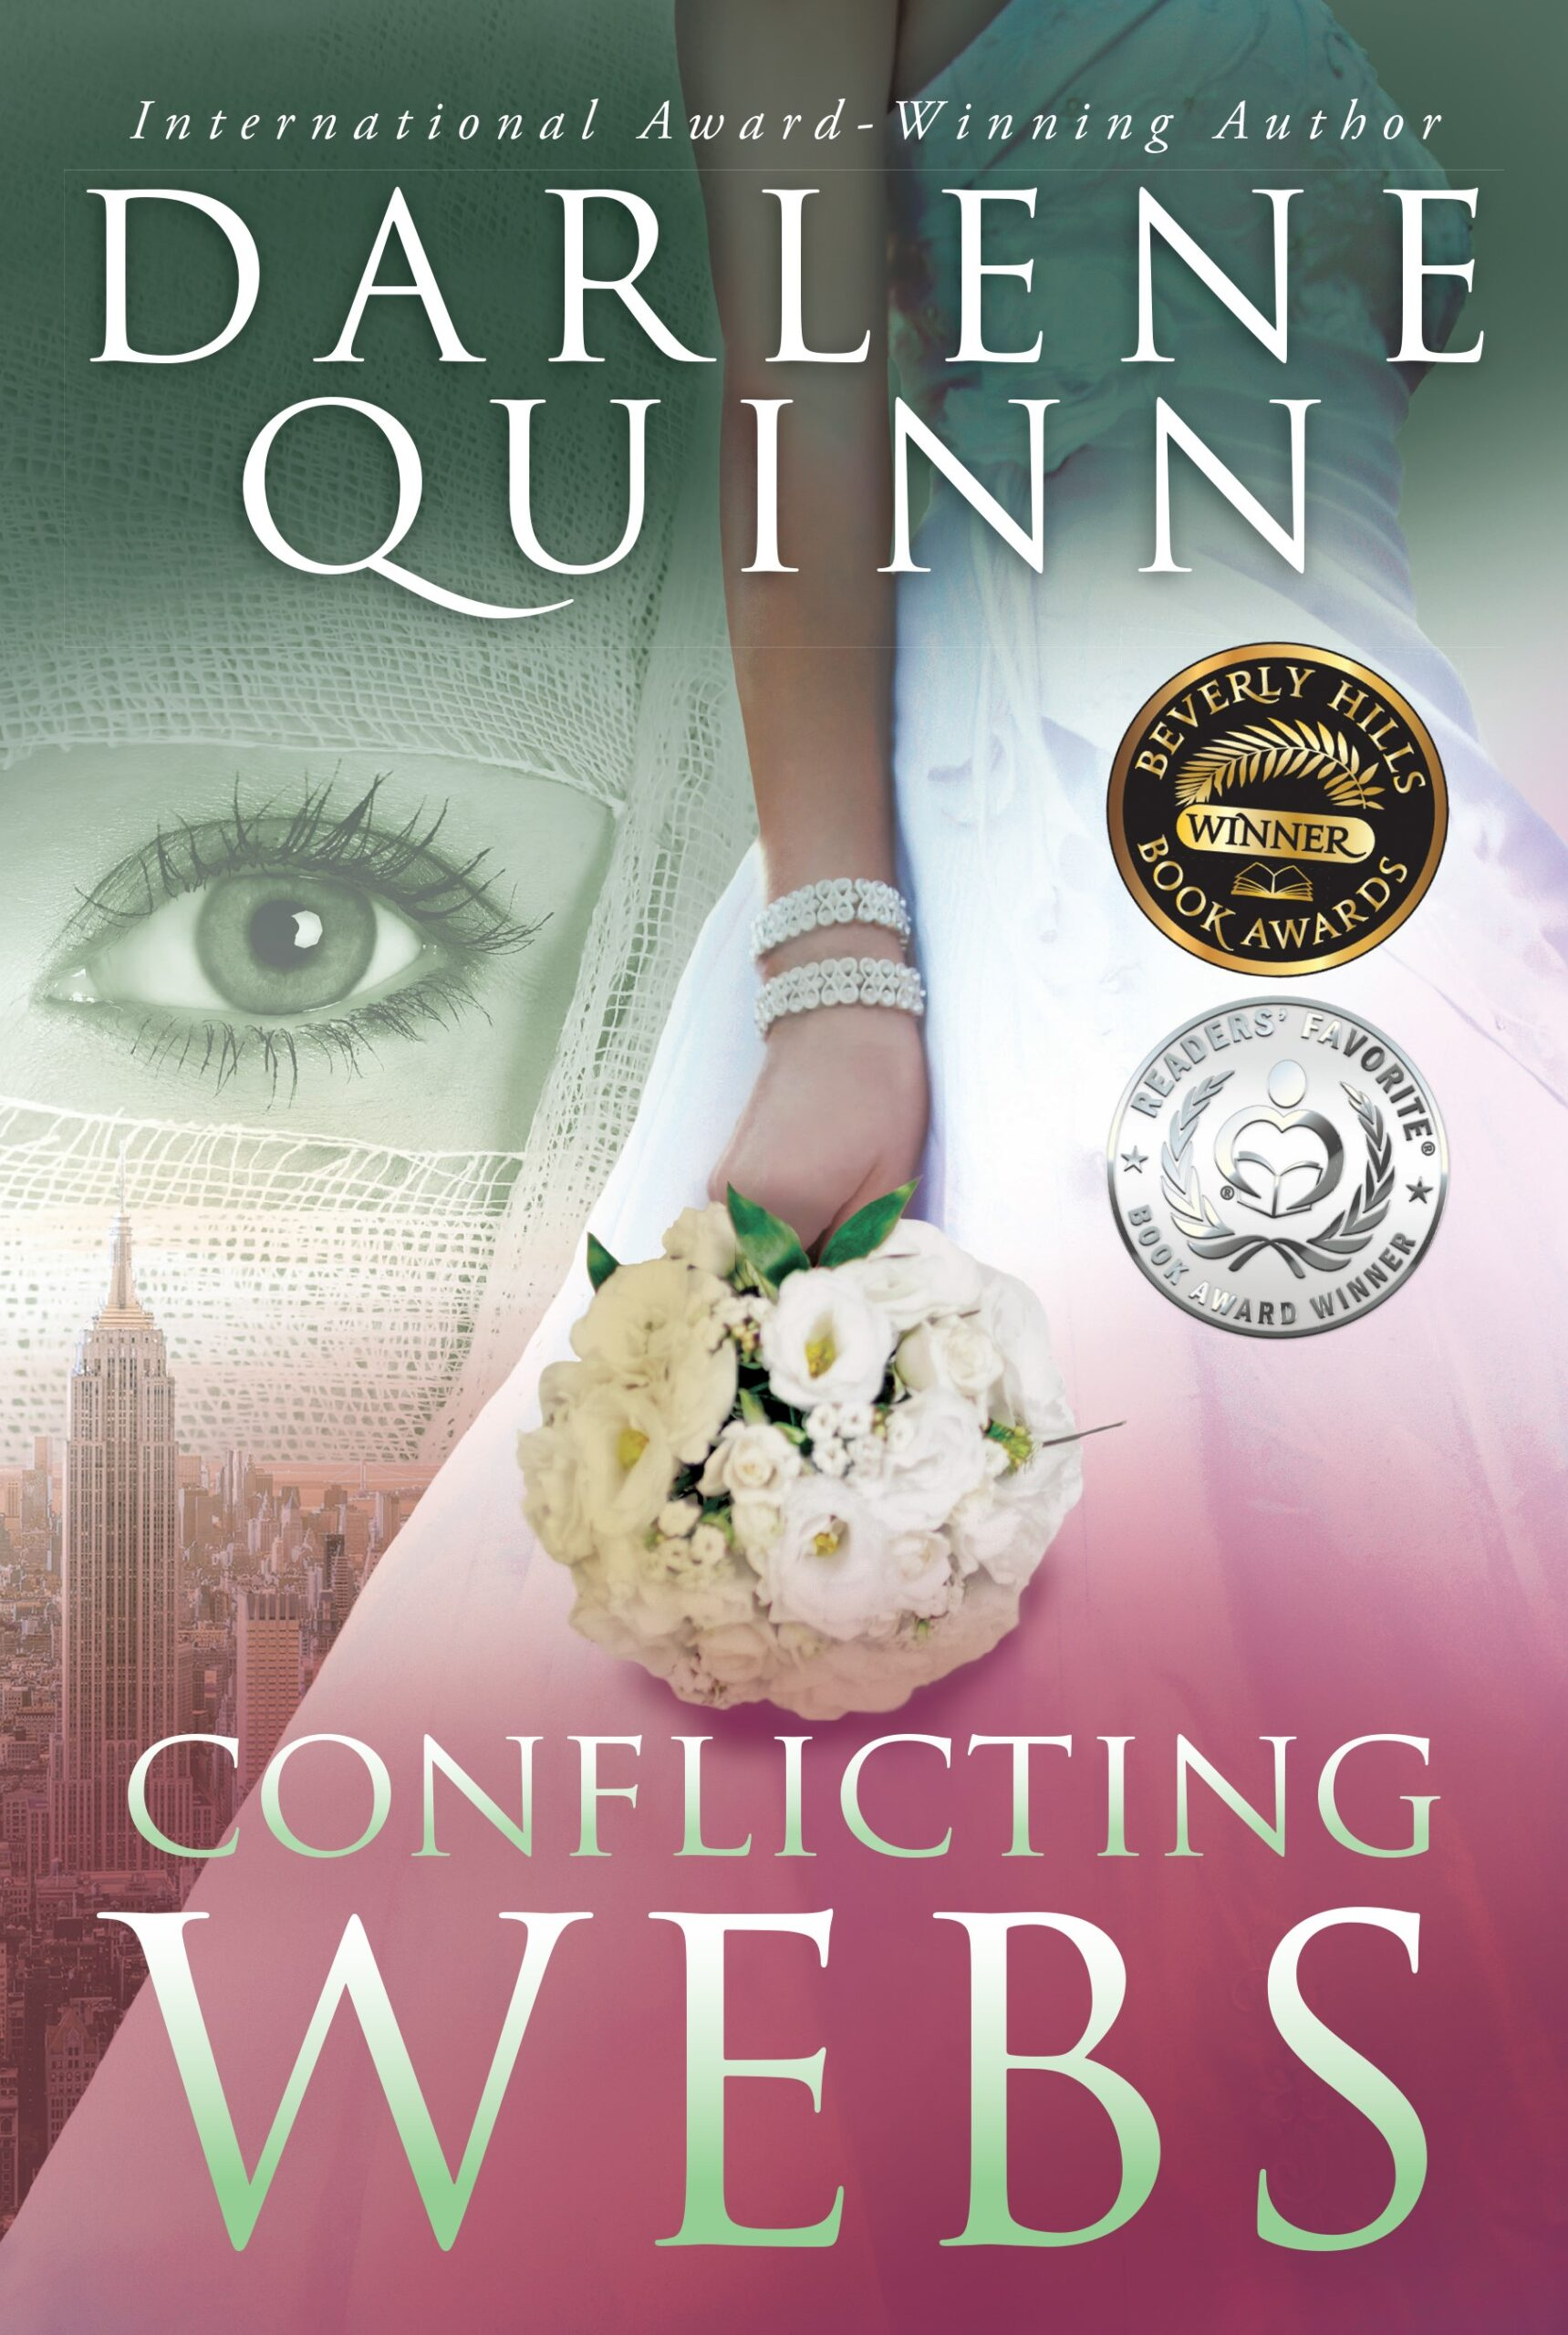 Conflicting-Webs-by-Darlene-Quinn-2